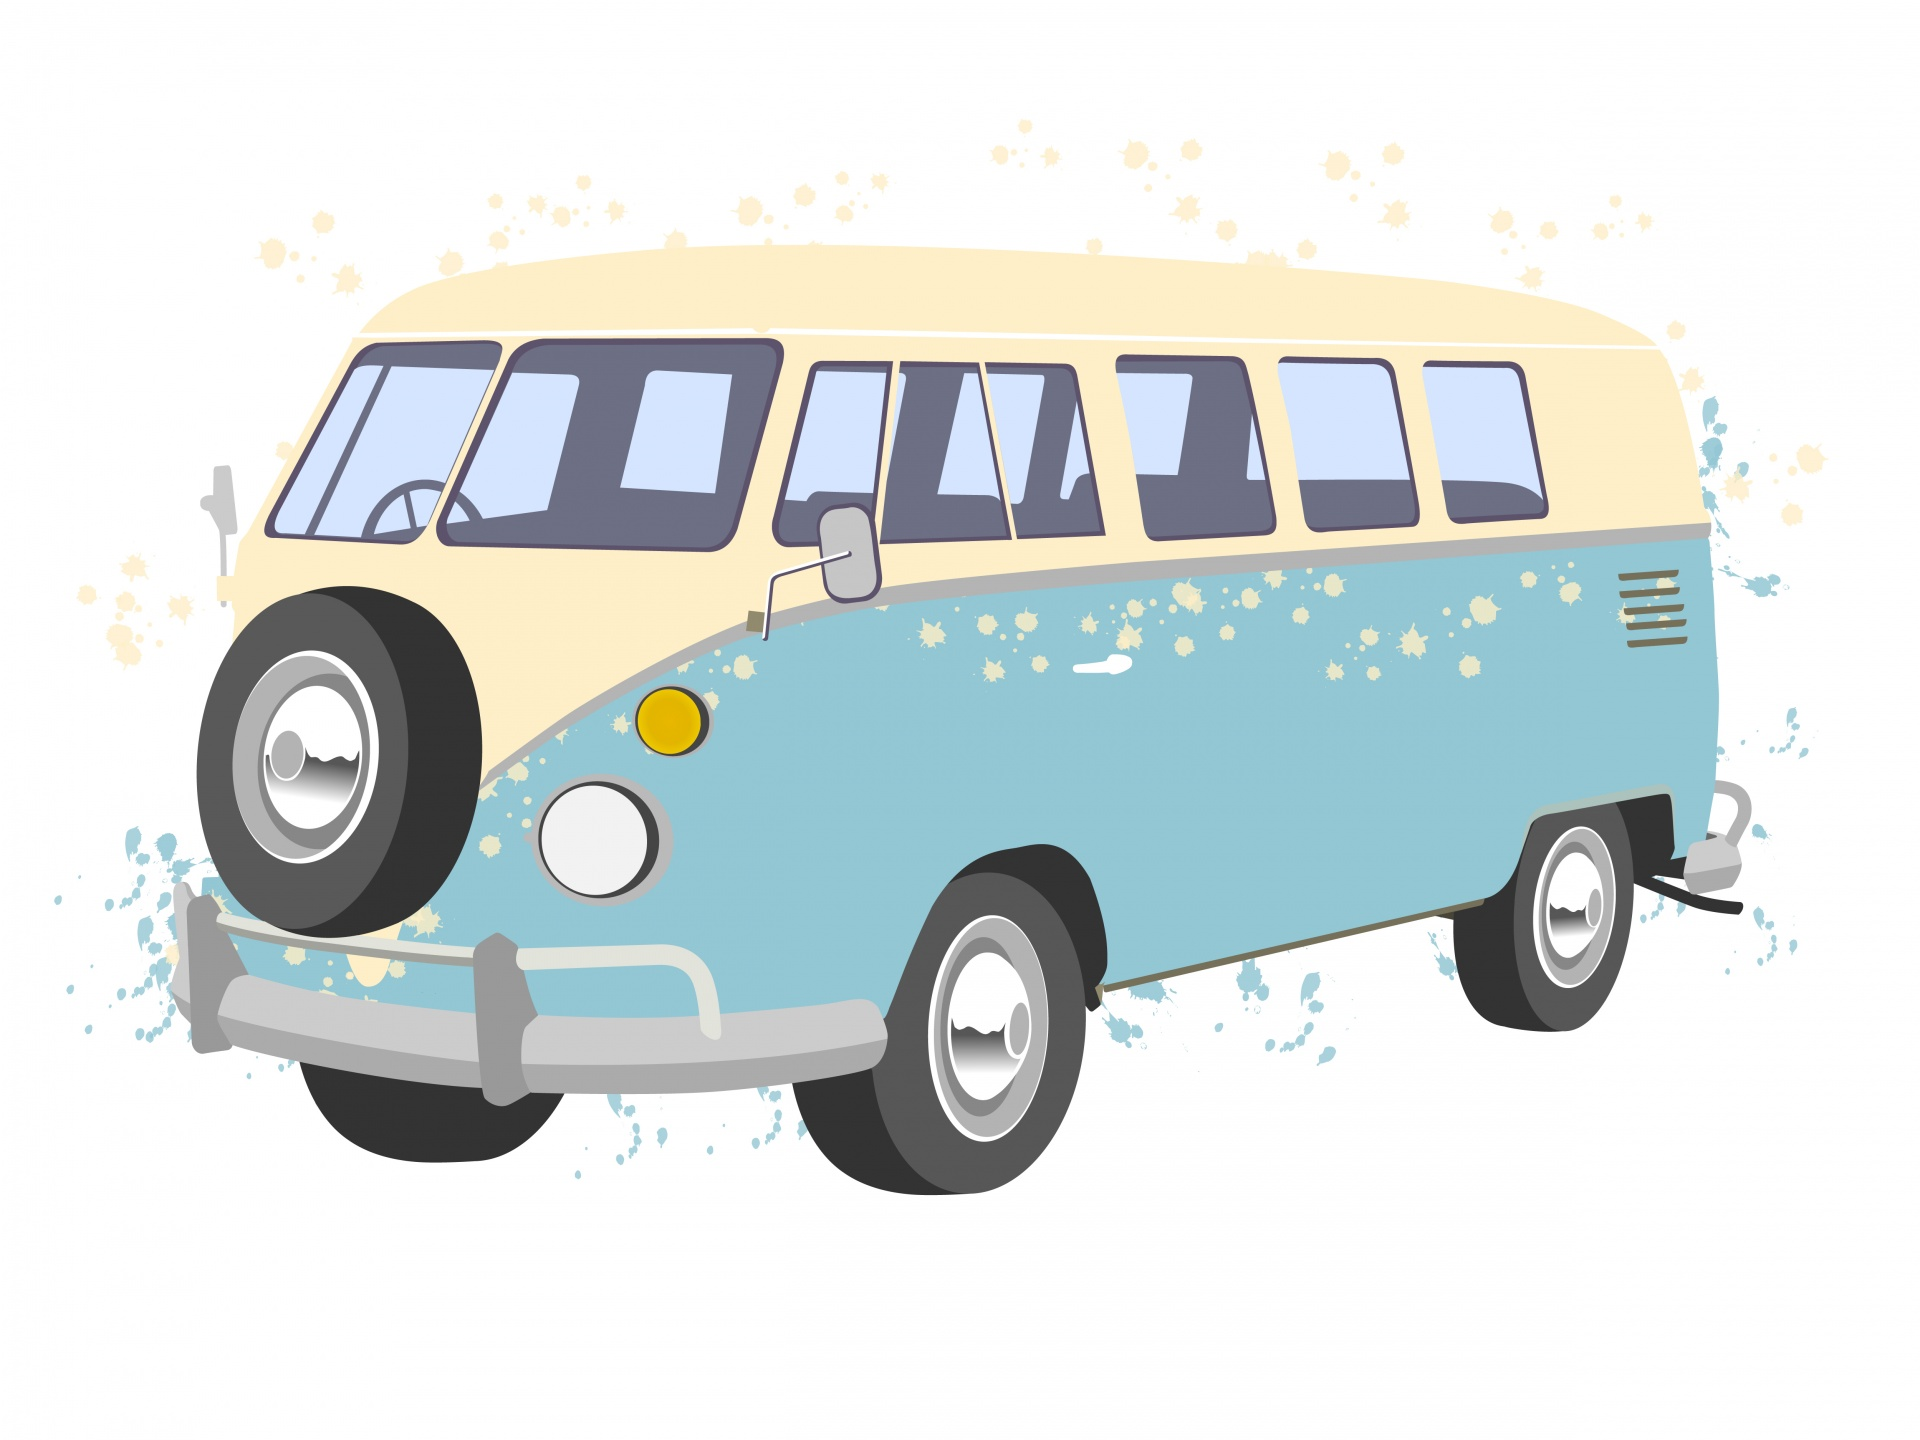 VW camper van illustration with paint splashes on white background